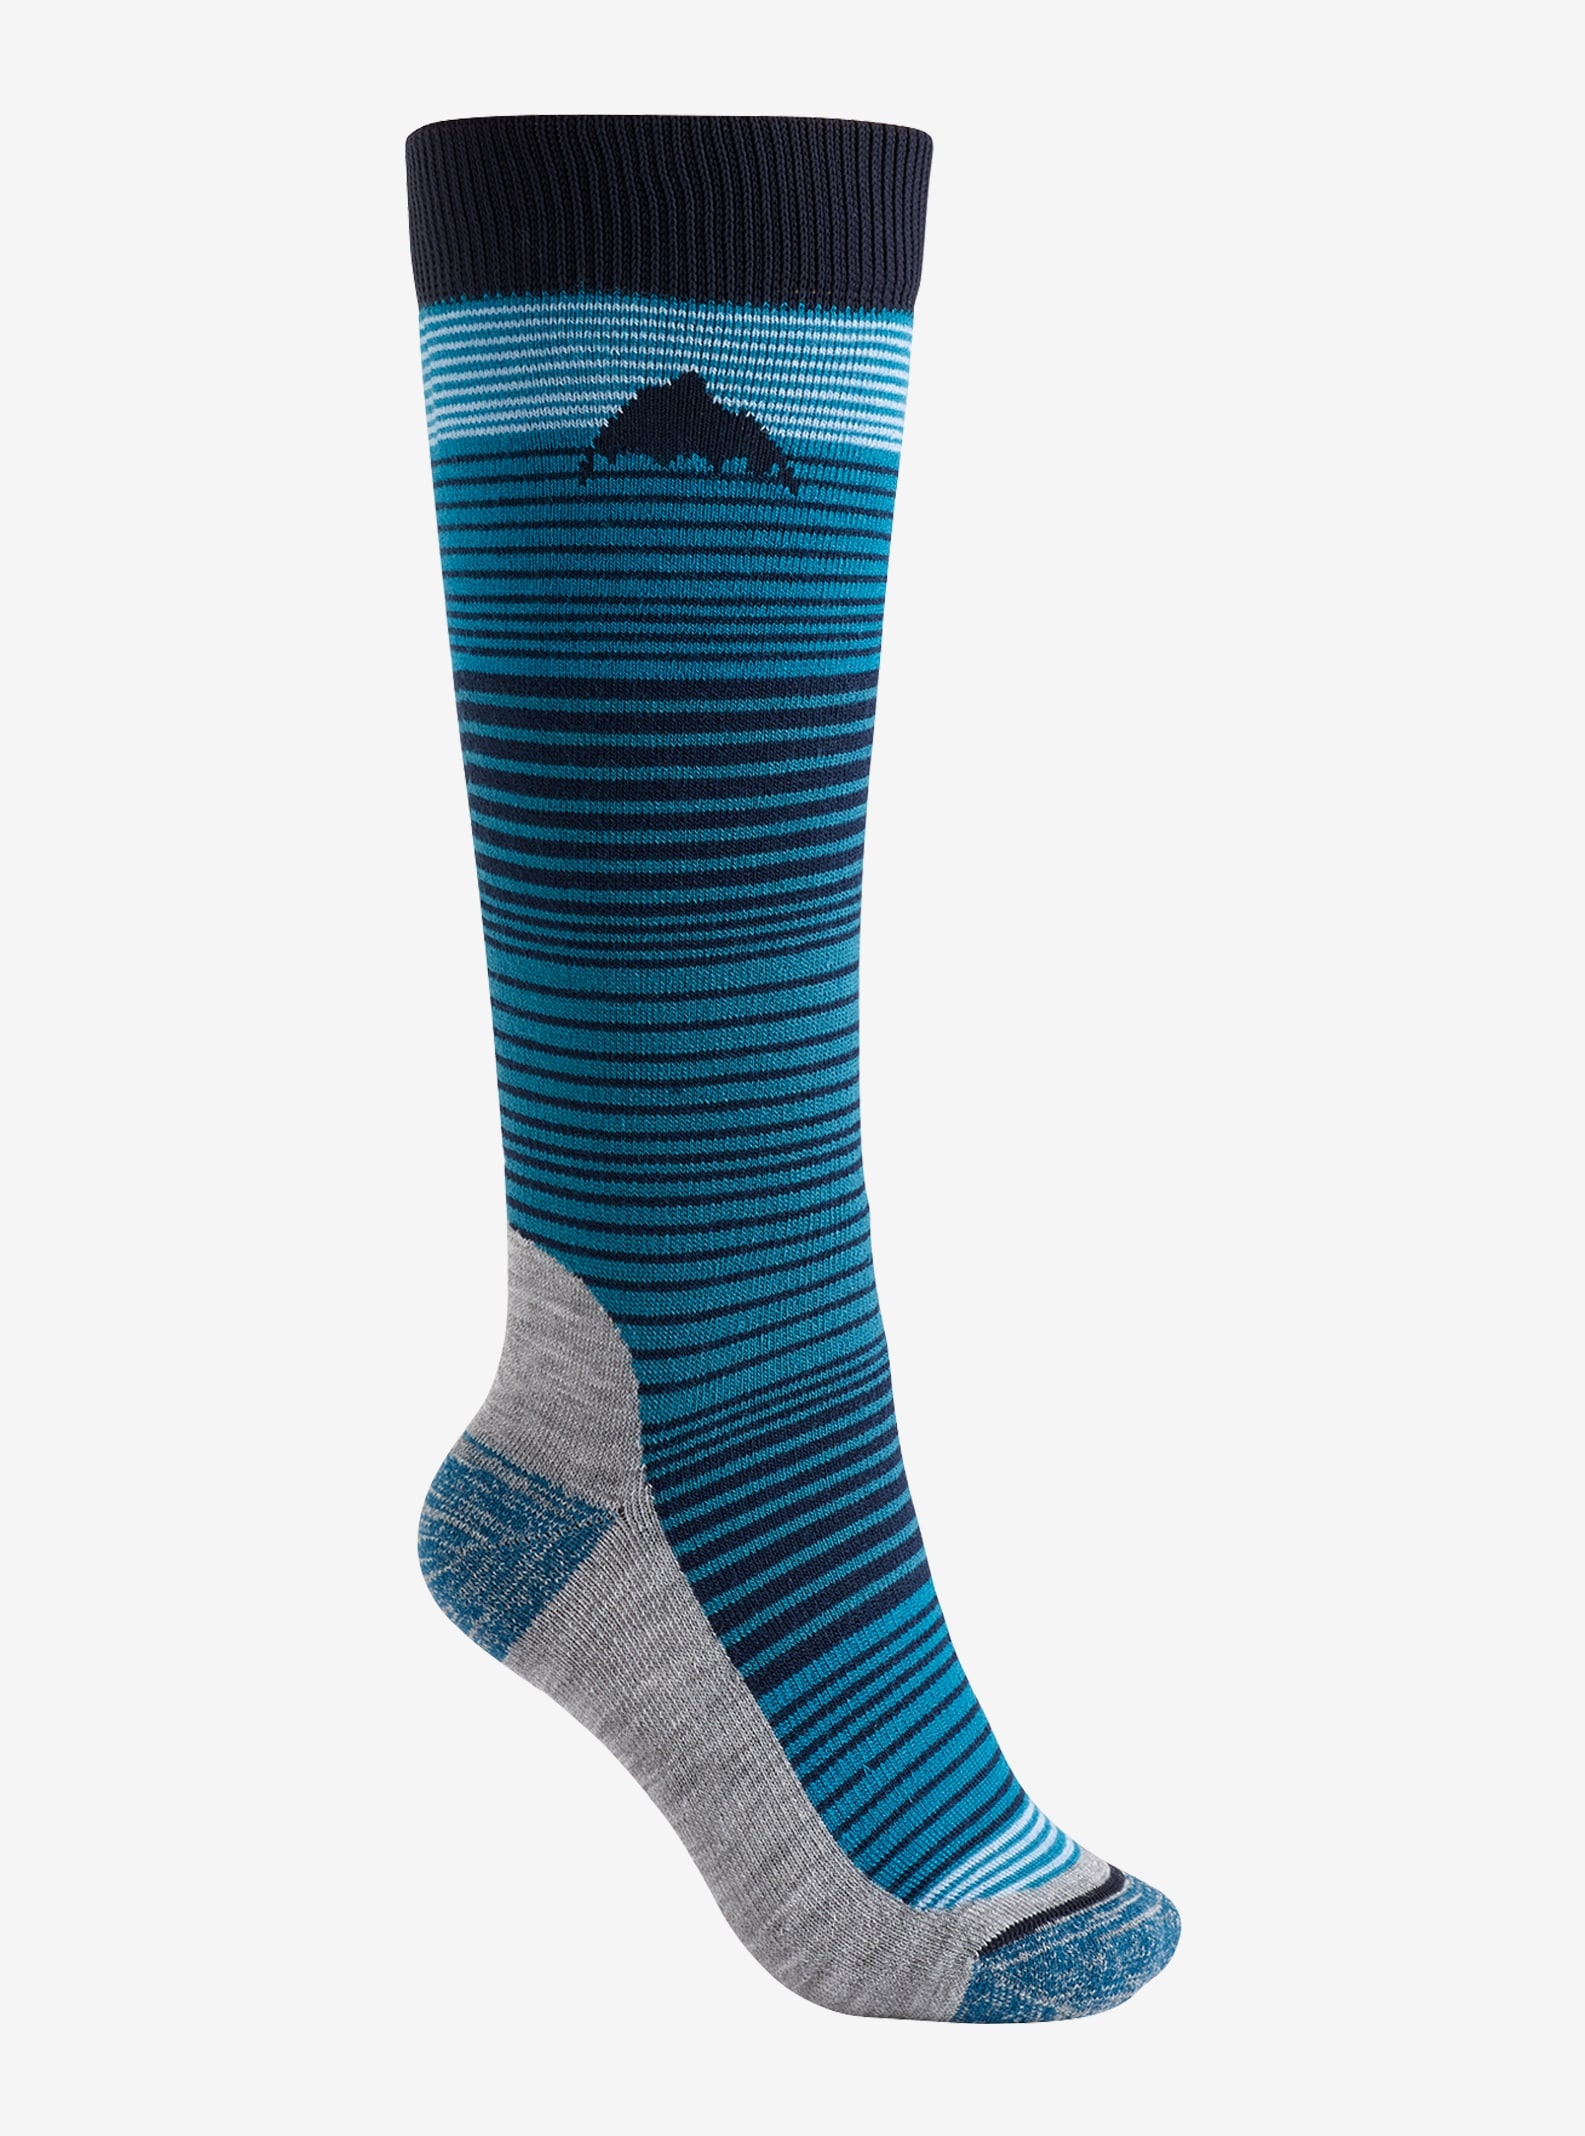 Women's Burton Women's Scout Sock shown in Mood Indigo